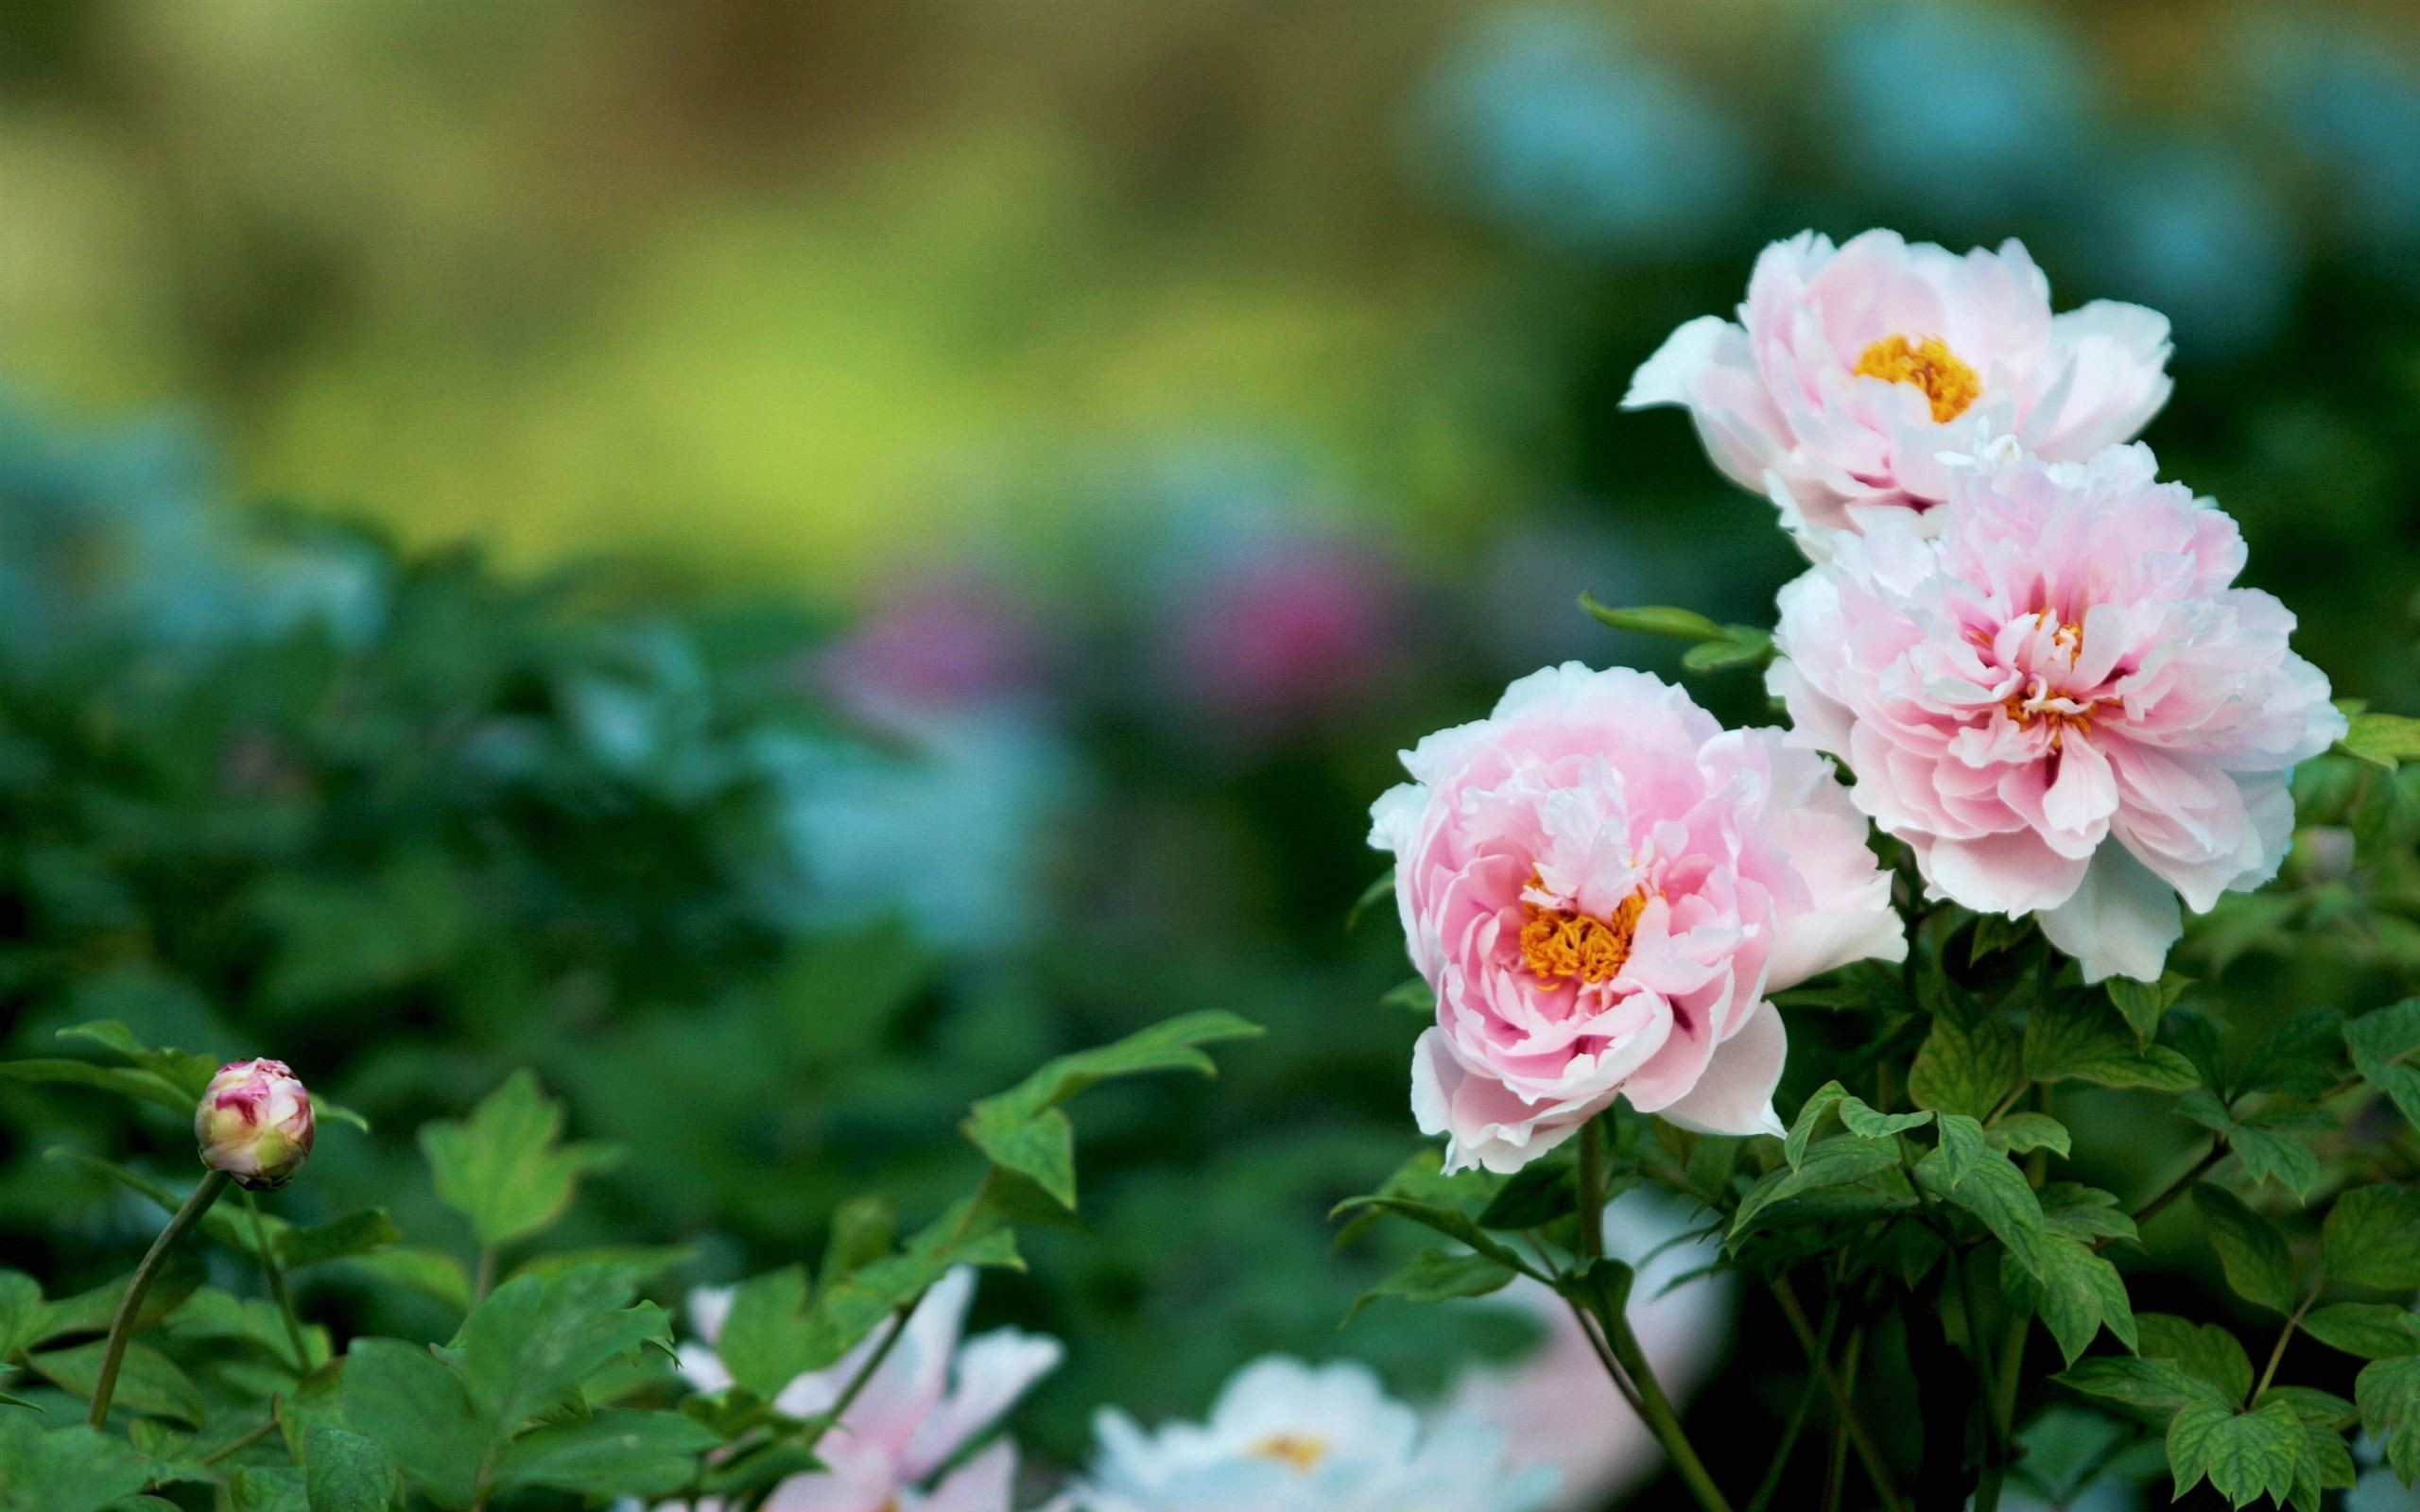 Res: 2560x1600, White Peonies Flowers